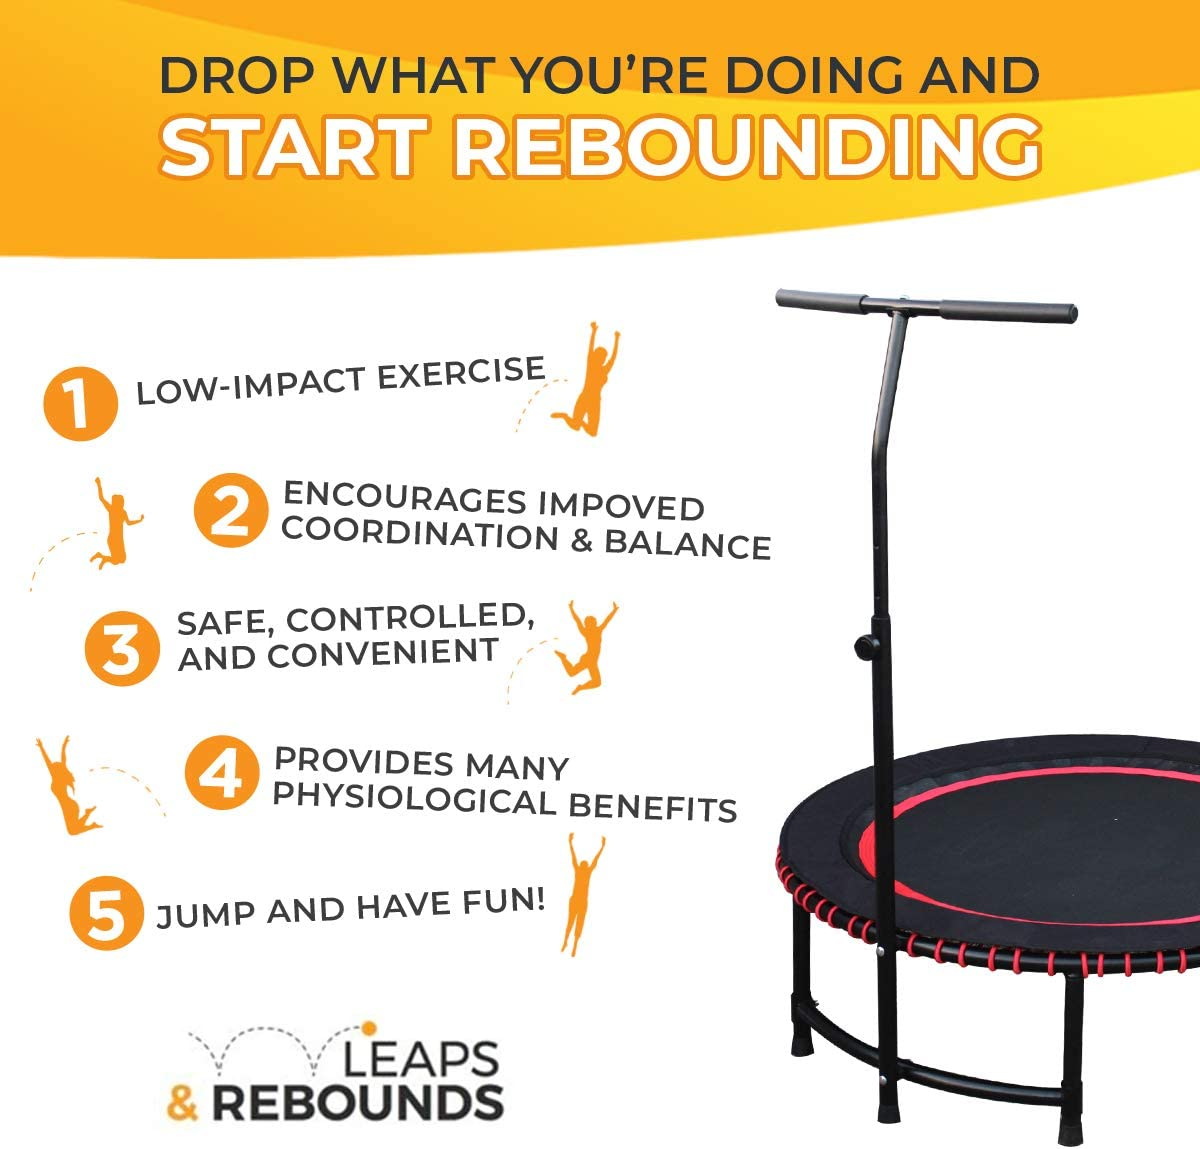 LEAPS /& REBOUNDS: Adjustable Stabilizer Bar Easy Assembly Fits All L/&R Fitness Trampolines Trampoline Sold Separately Grippable /& Cushy Foam Handles Slips Over Existing Legs